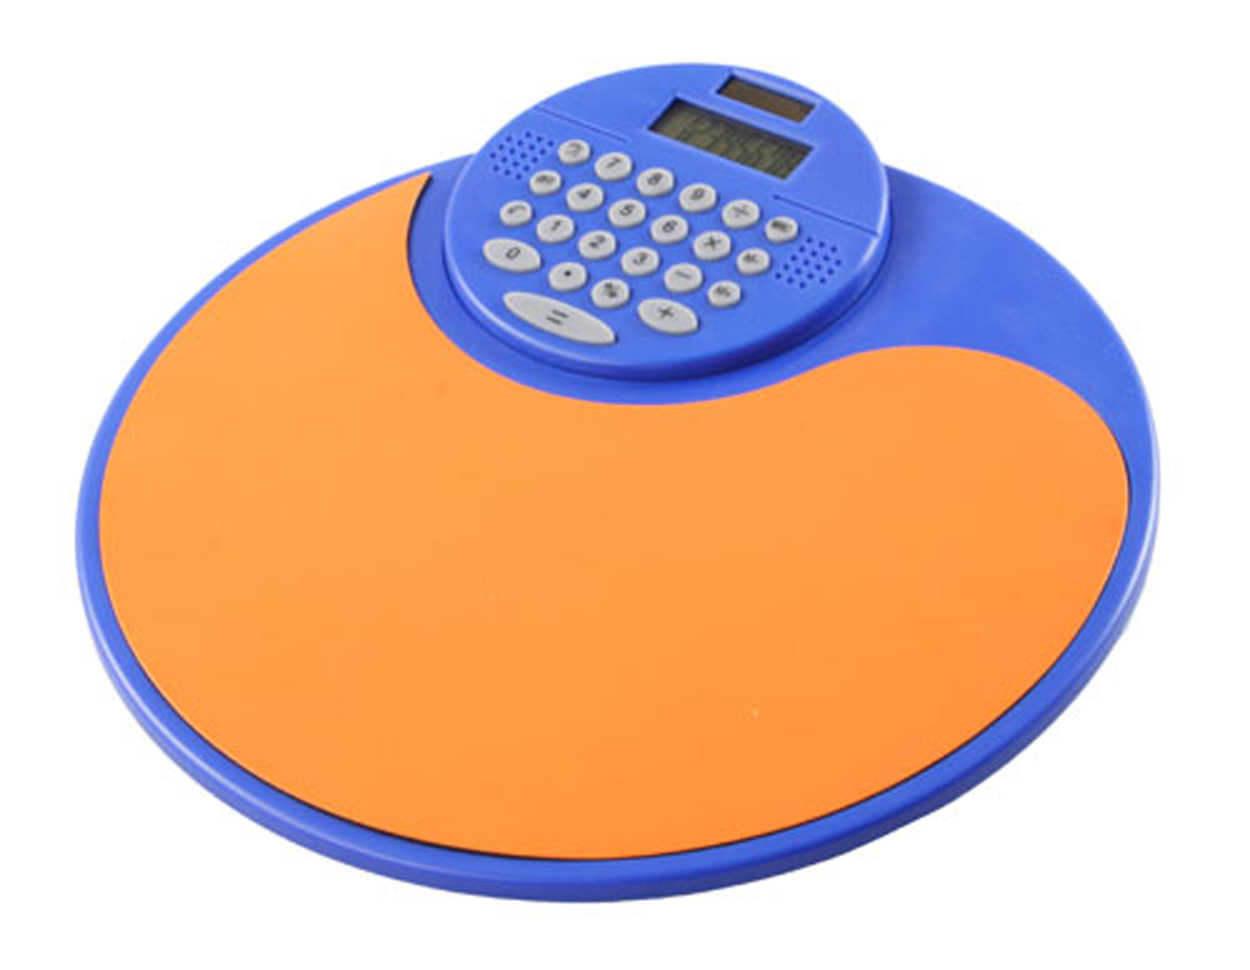 Mousely Mousepad calculator